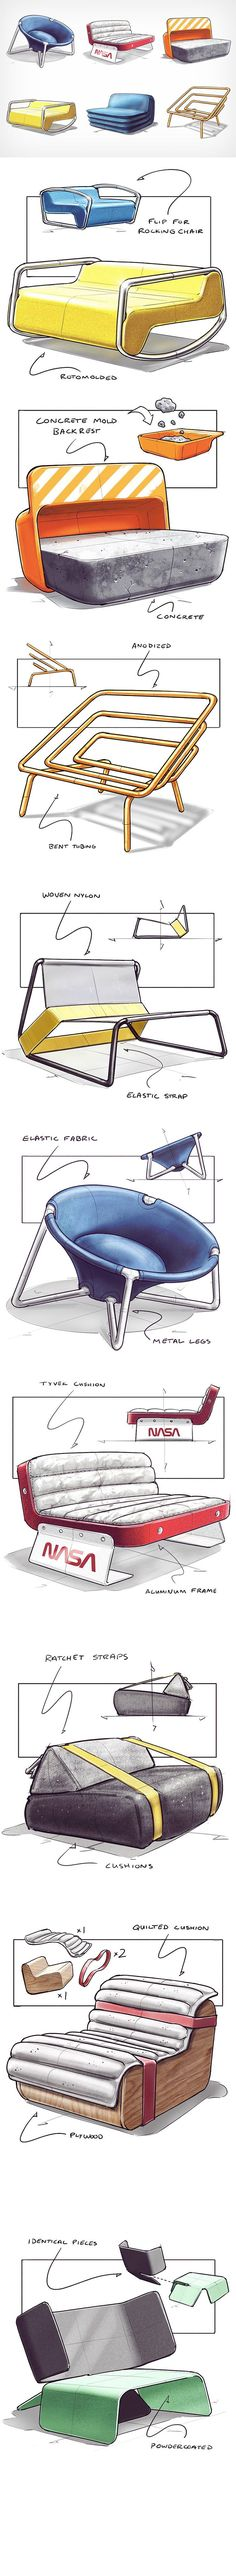 Given the hashtag of Baker uploads unusual conceptual chair designs almost every week. The chairs showcase inventiveness that one rarely sees in furniture design, as concepts take inspiration from quite literally anywhere. Scroll down Cool Furniture, Furniture Design, Furniture Sketches, Unusual Furniture, Industrial Design Sketch, House Sketch, Design Theory, Retro Logos, Vintage Logos